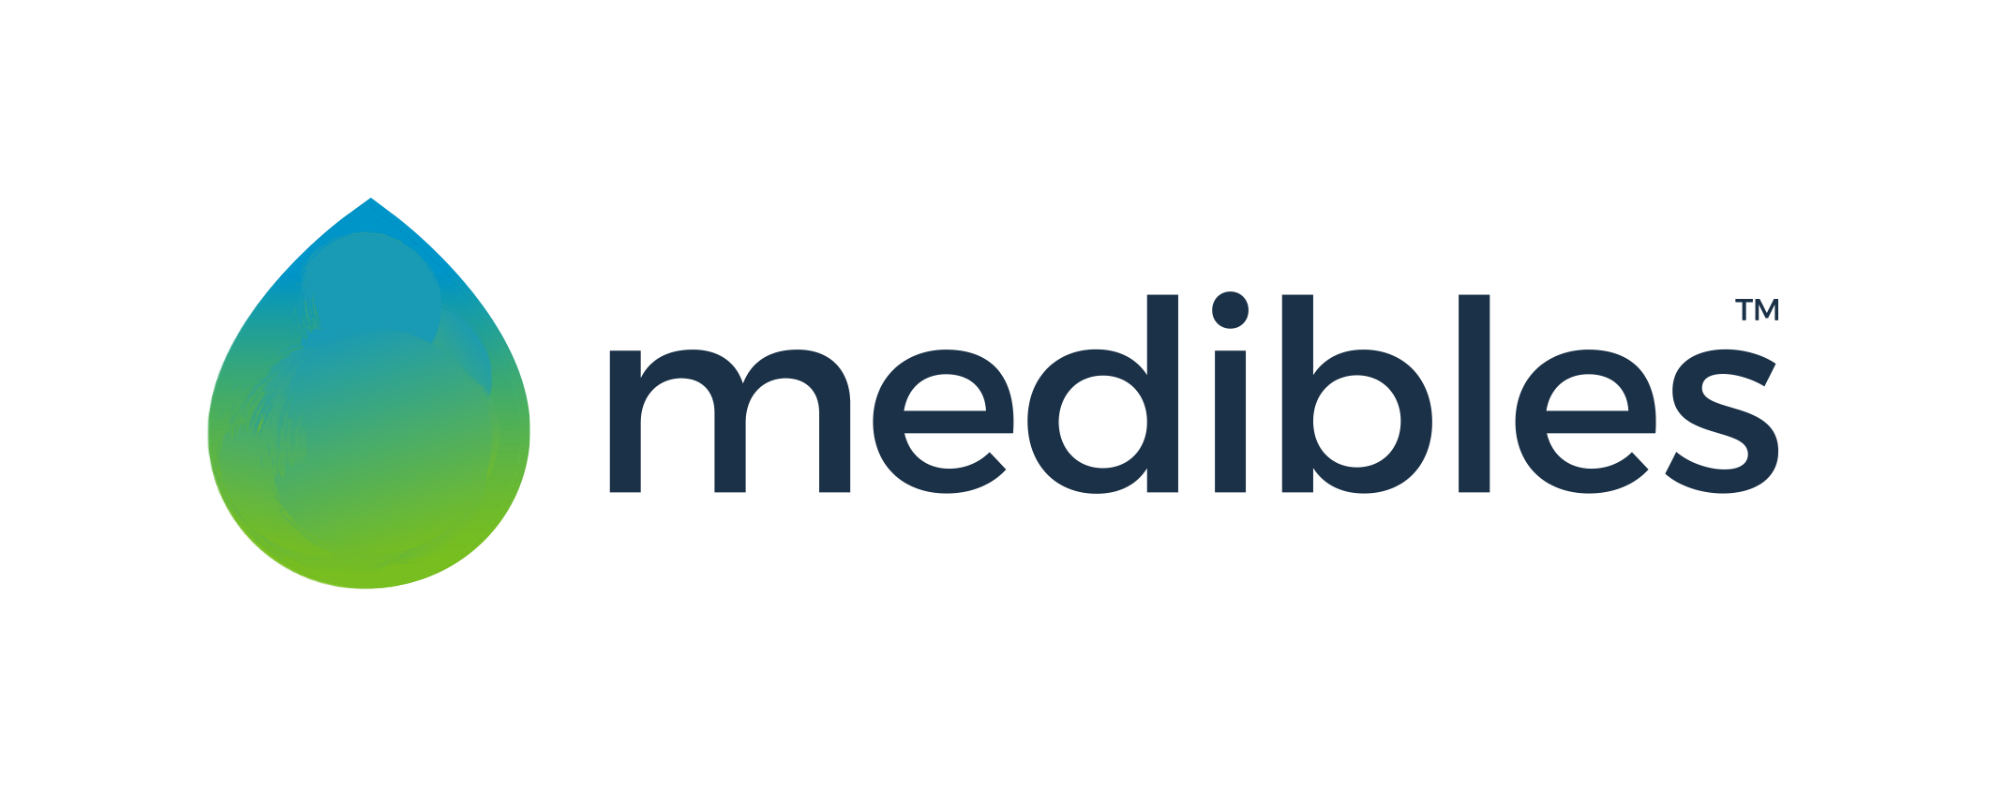 medibles technologies